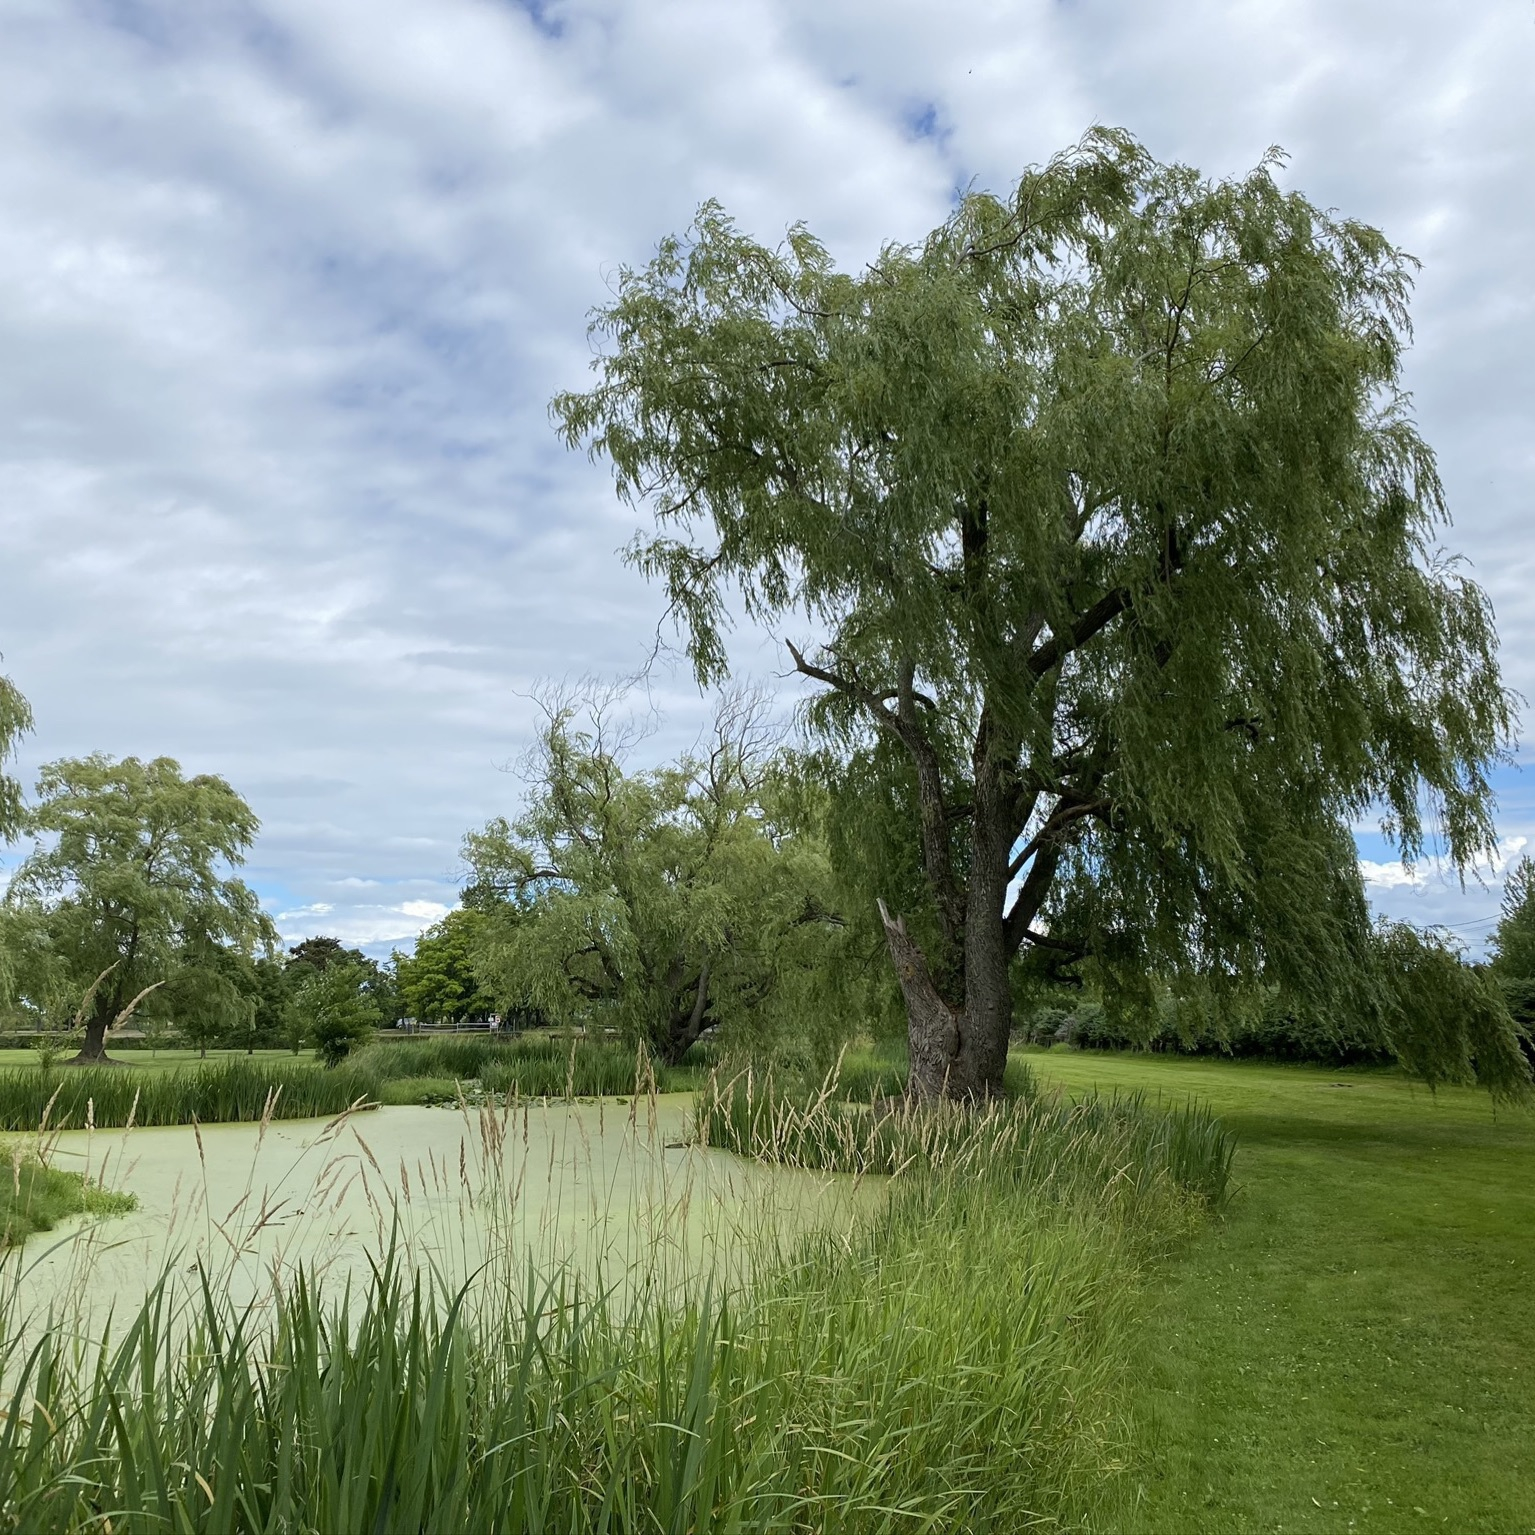 Pond and willow tree.